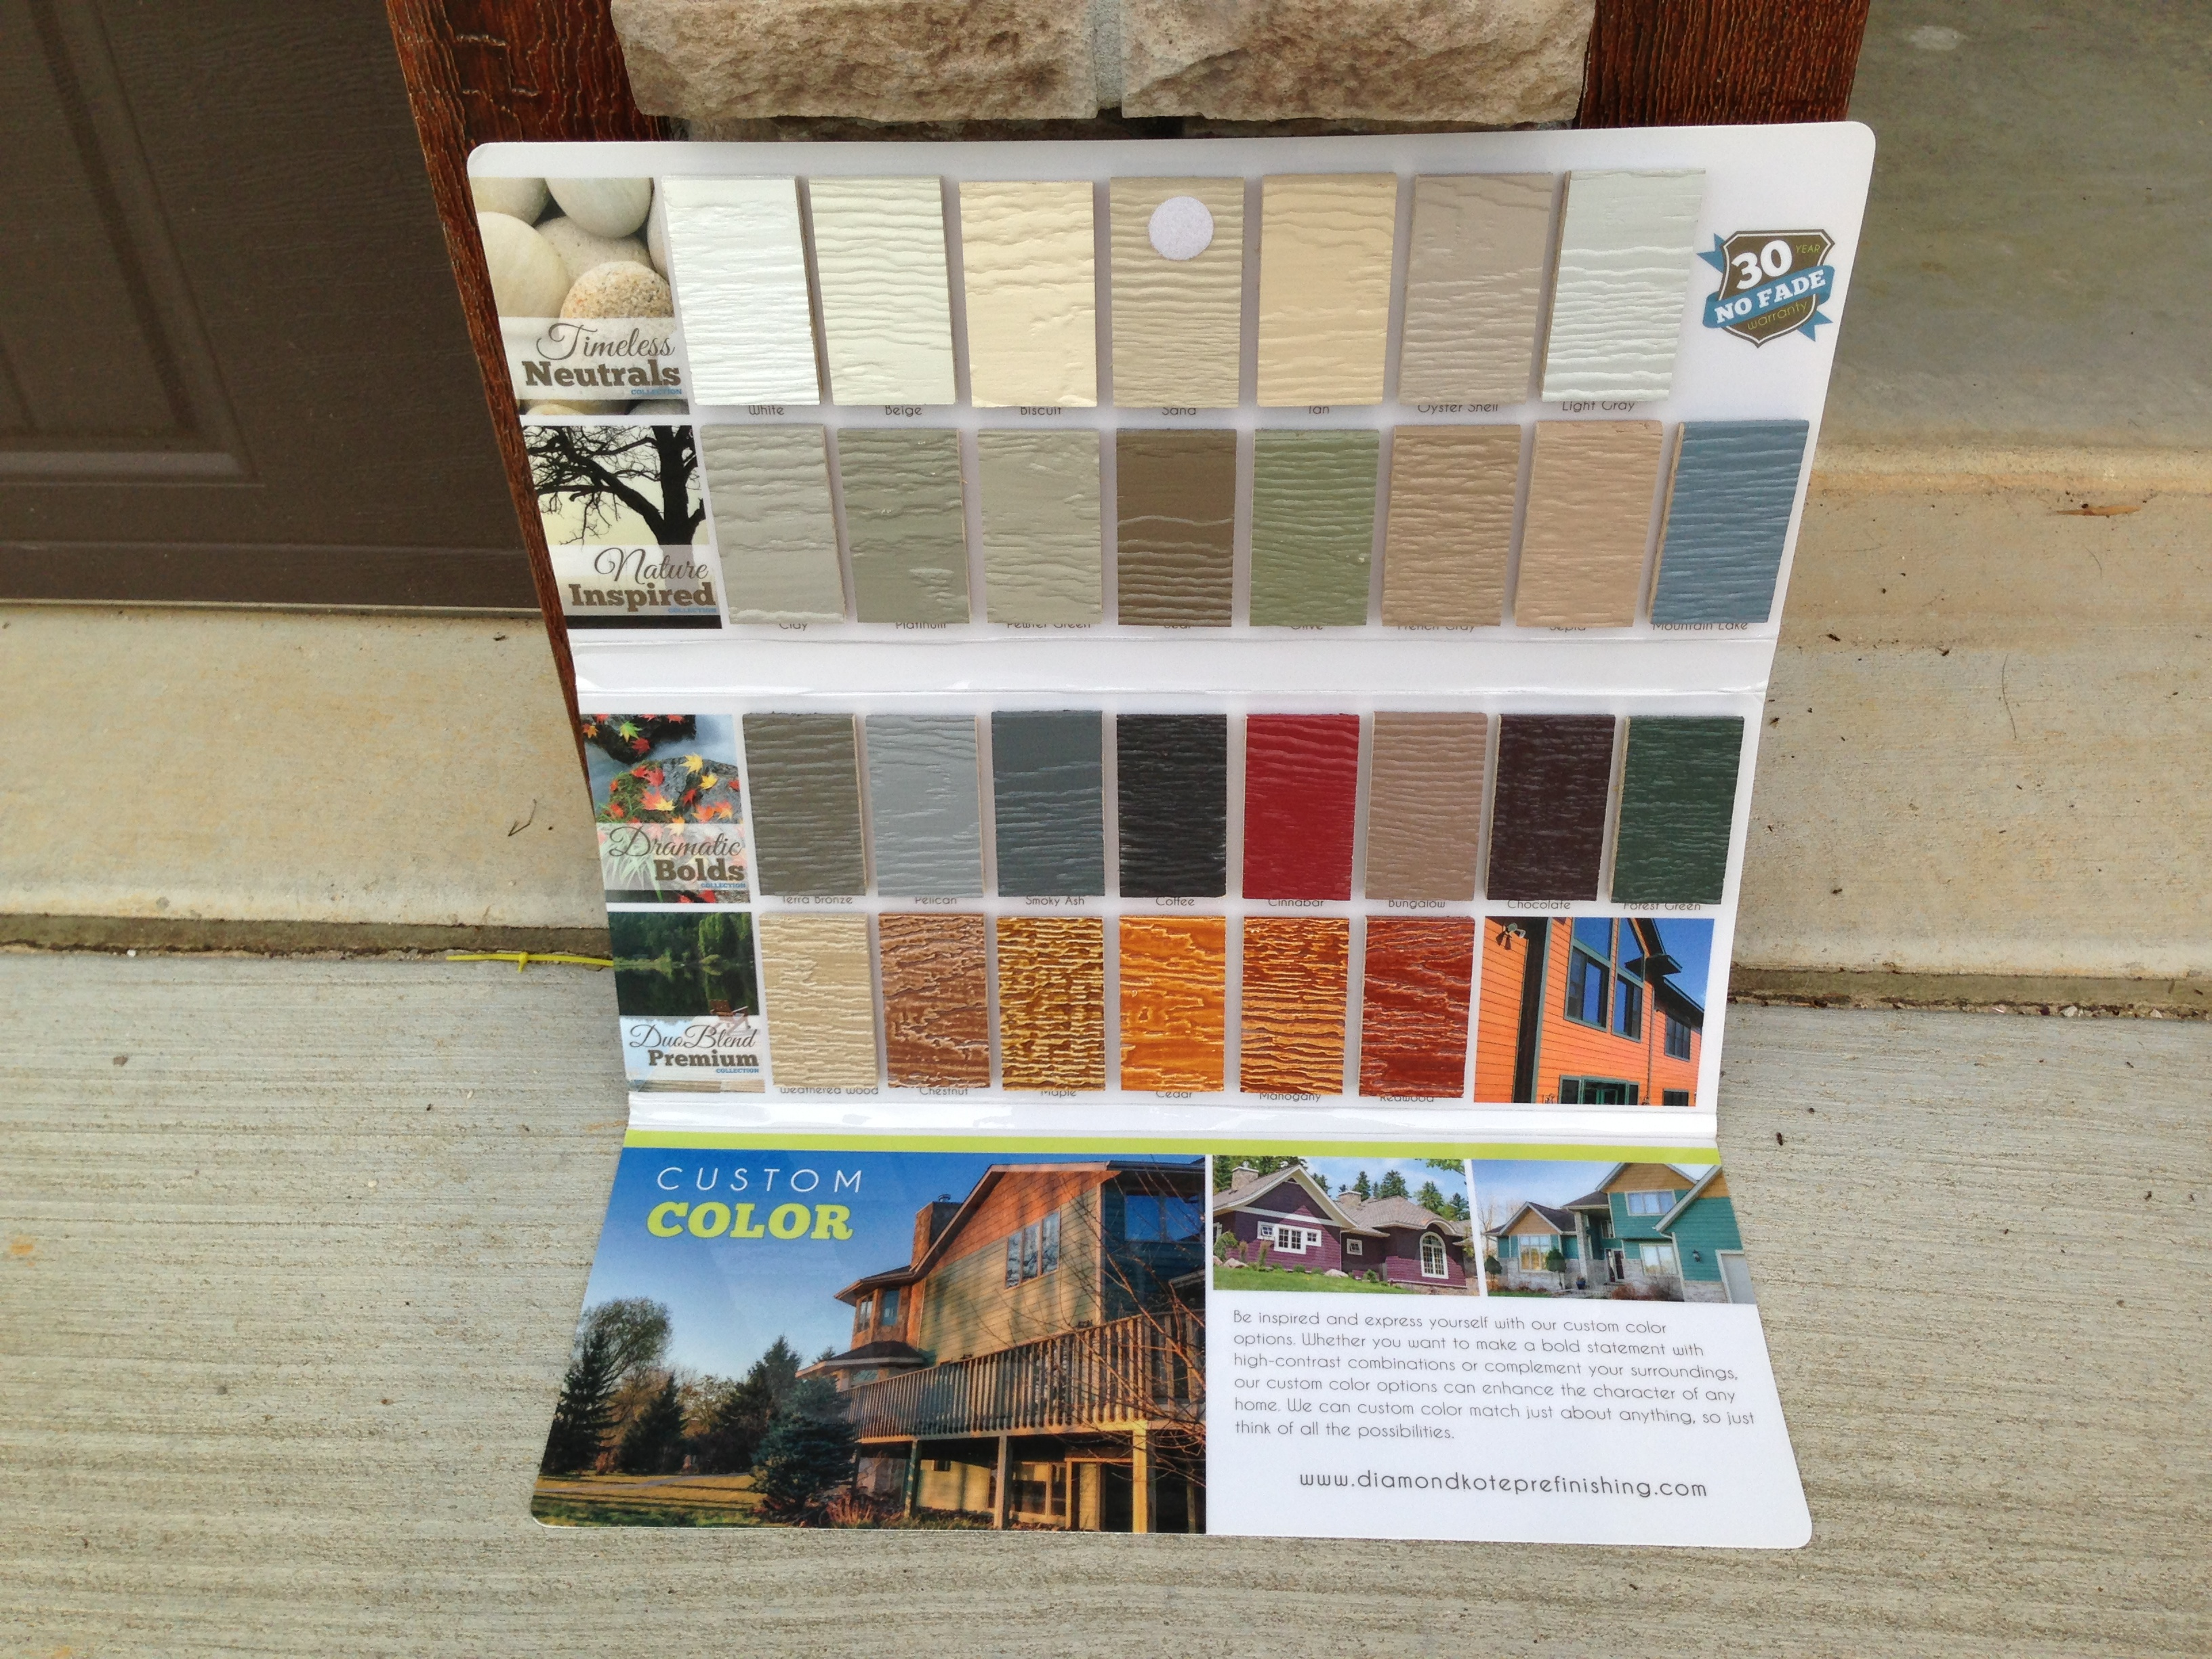 Lp smartside siding colors video search engine at for Diamond kote lp siding colors